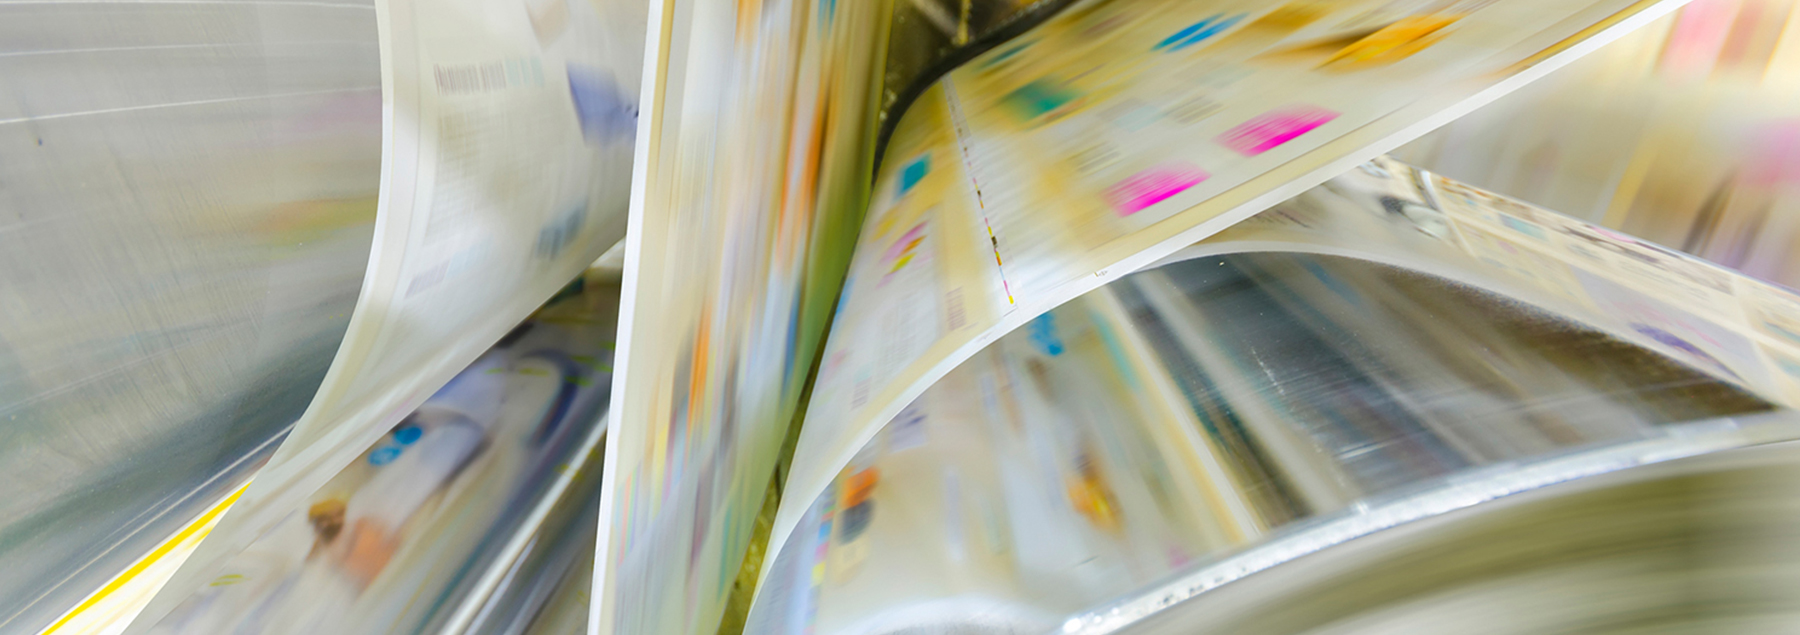 Whatever your printing needs are, we